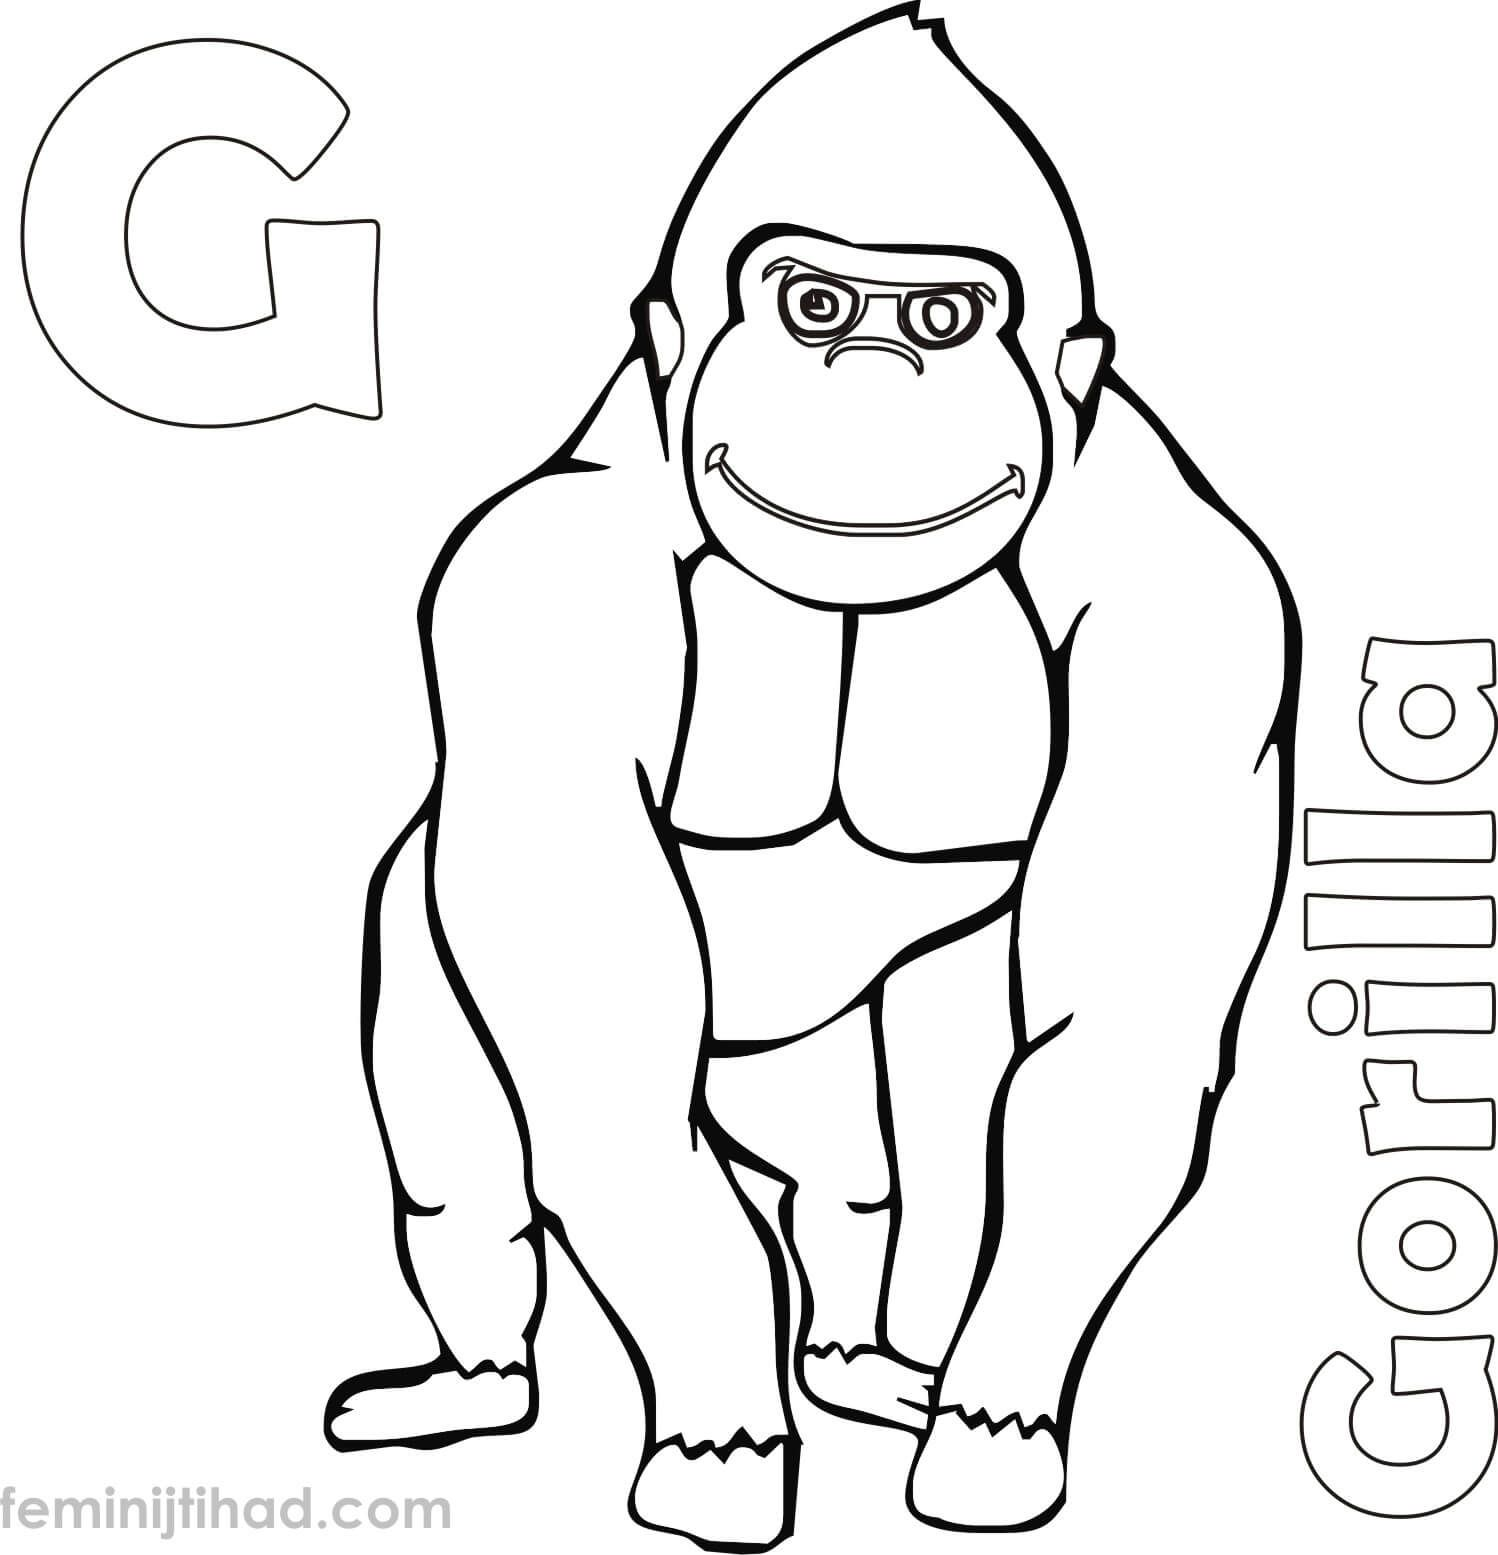 Gorilla Coloring Pages Printable Free Coloring Sheets Family Coloring Pages Coloring Pages Shape Coloring Pages